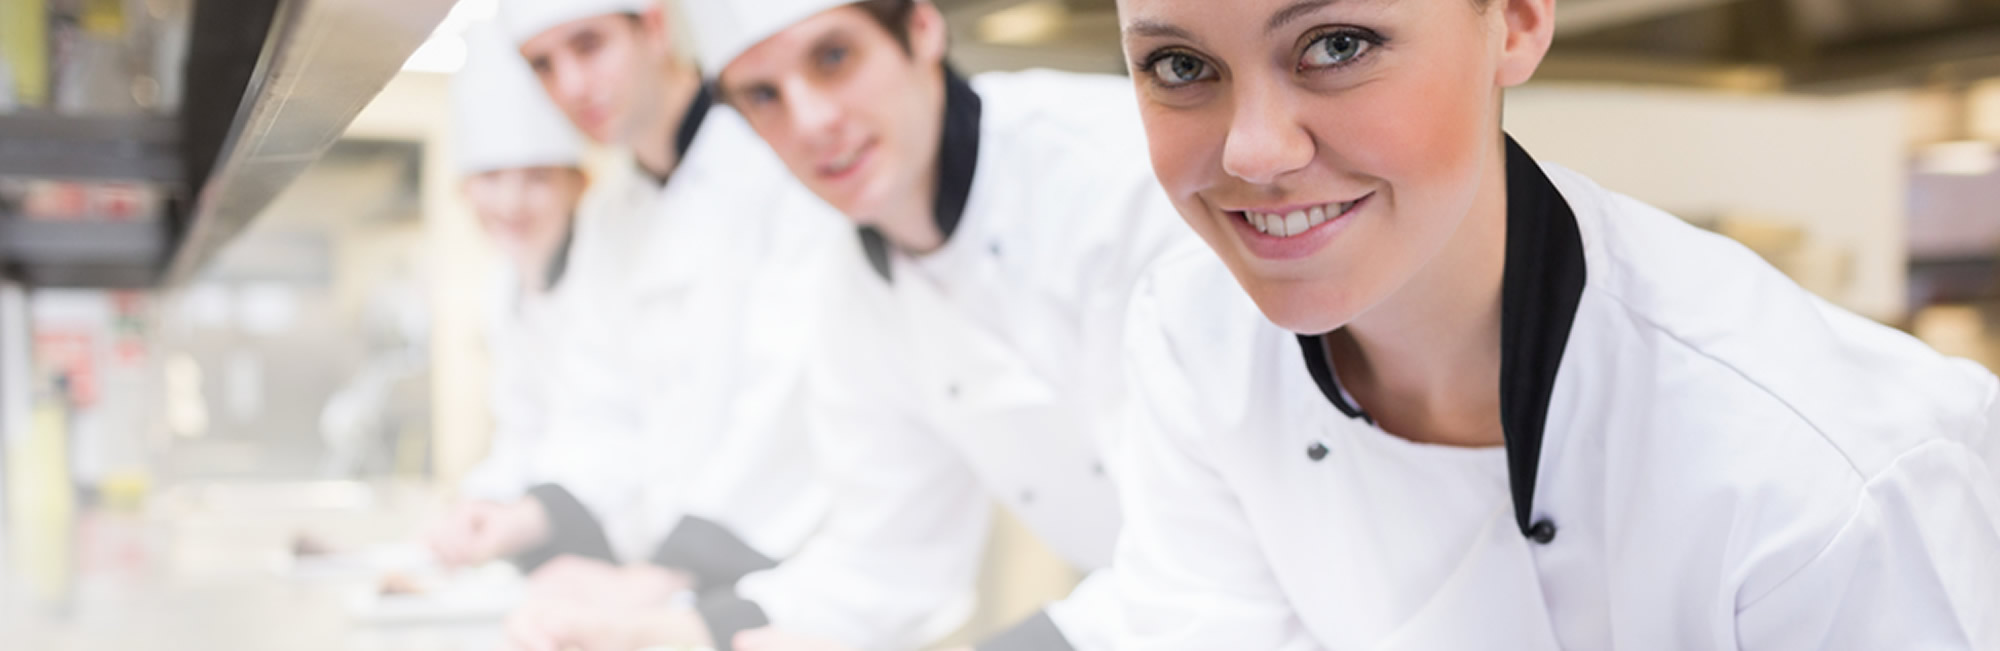 We know how important hygiene standards are for today's commercial kitchens.